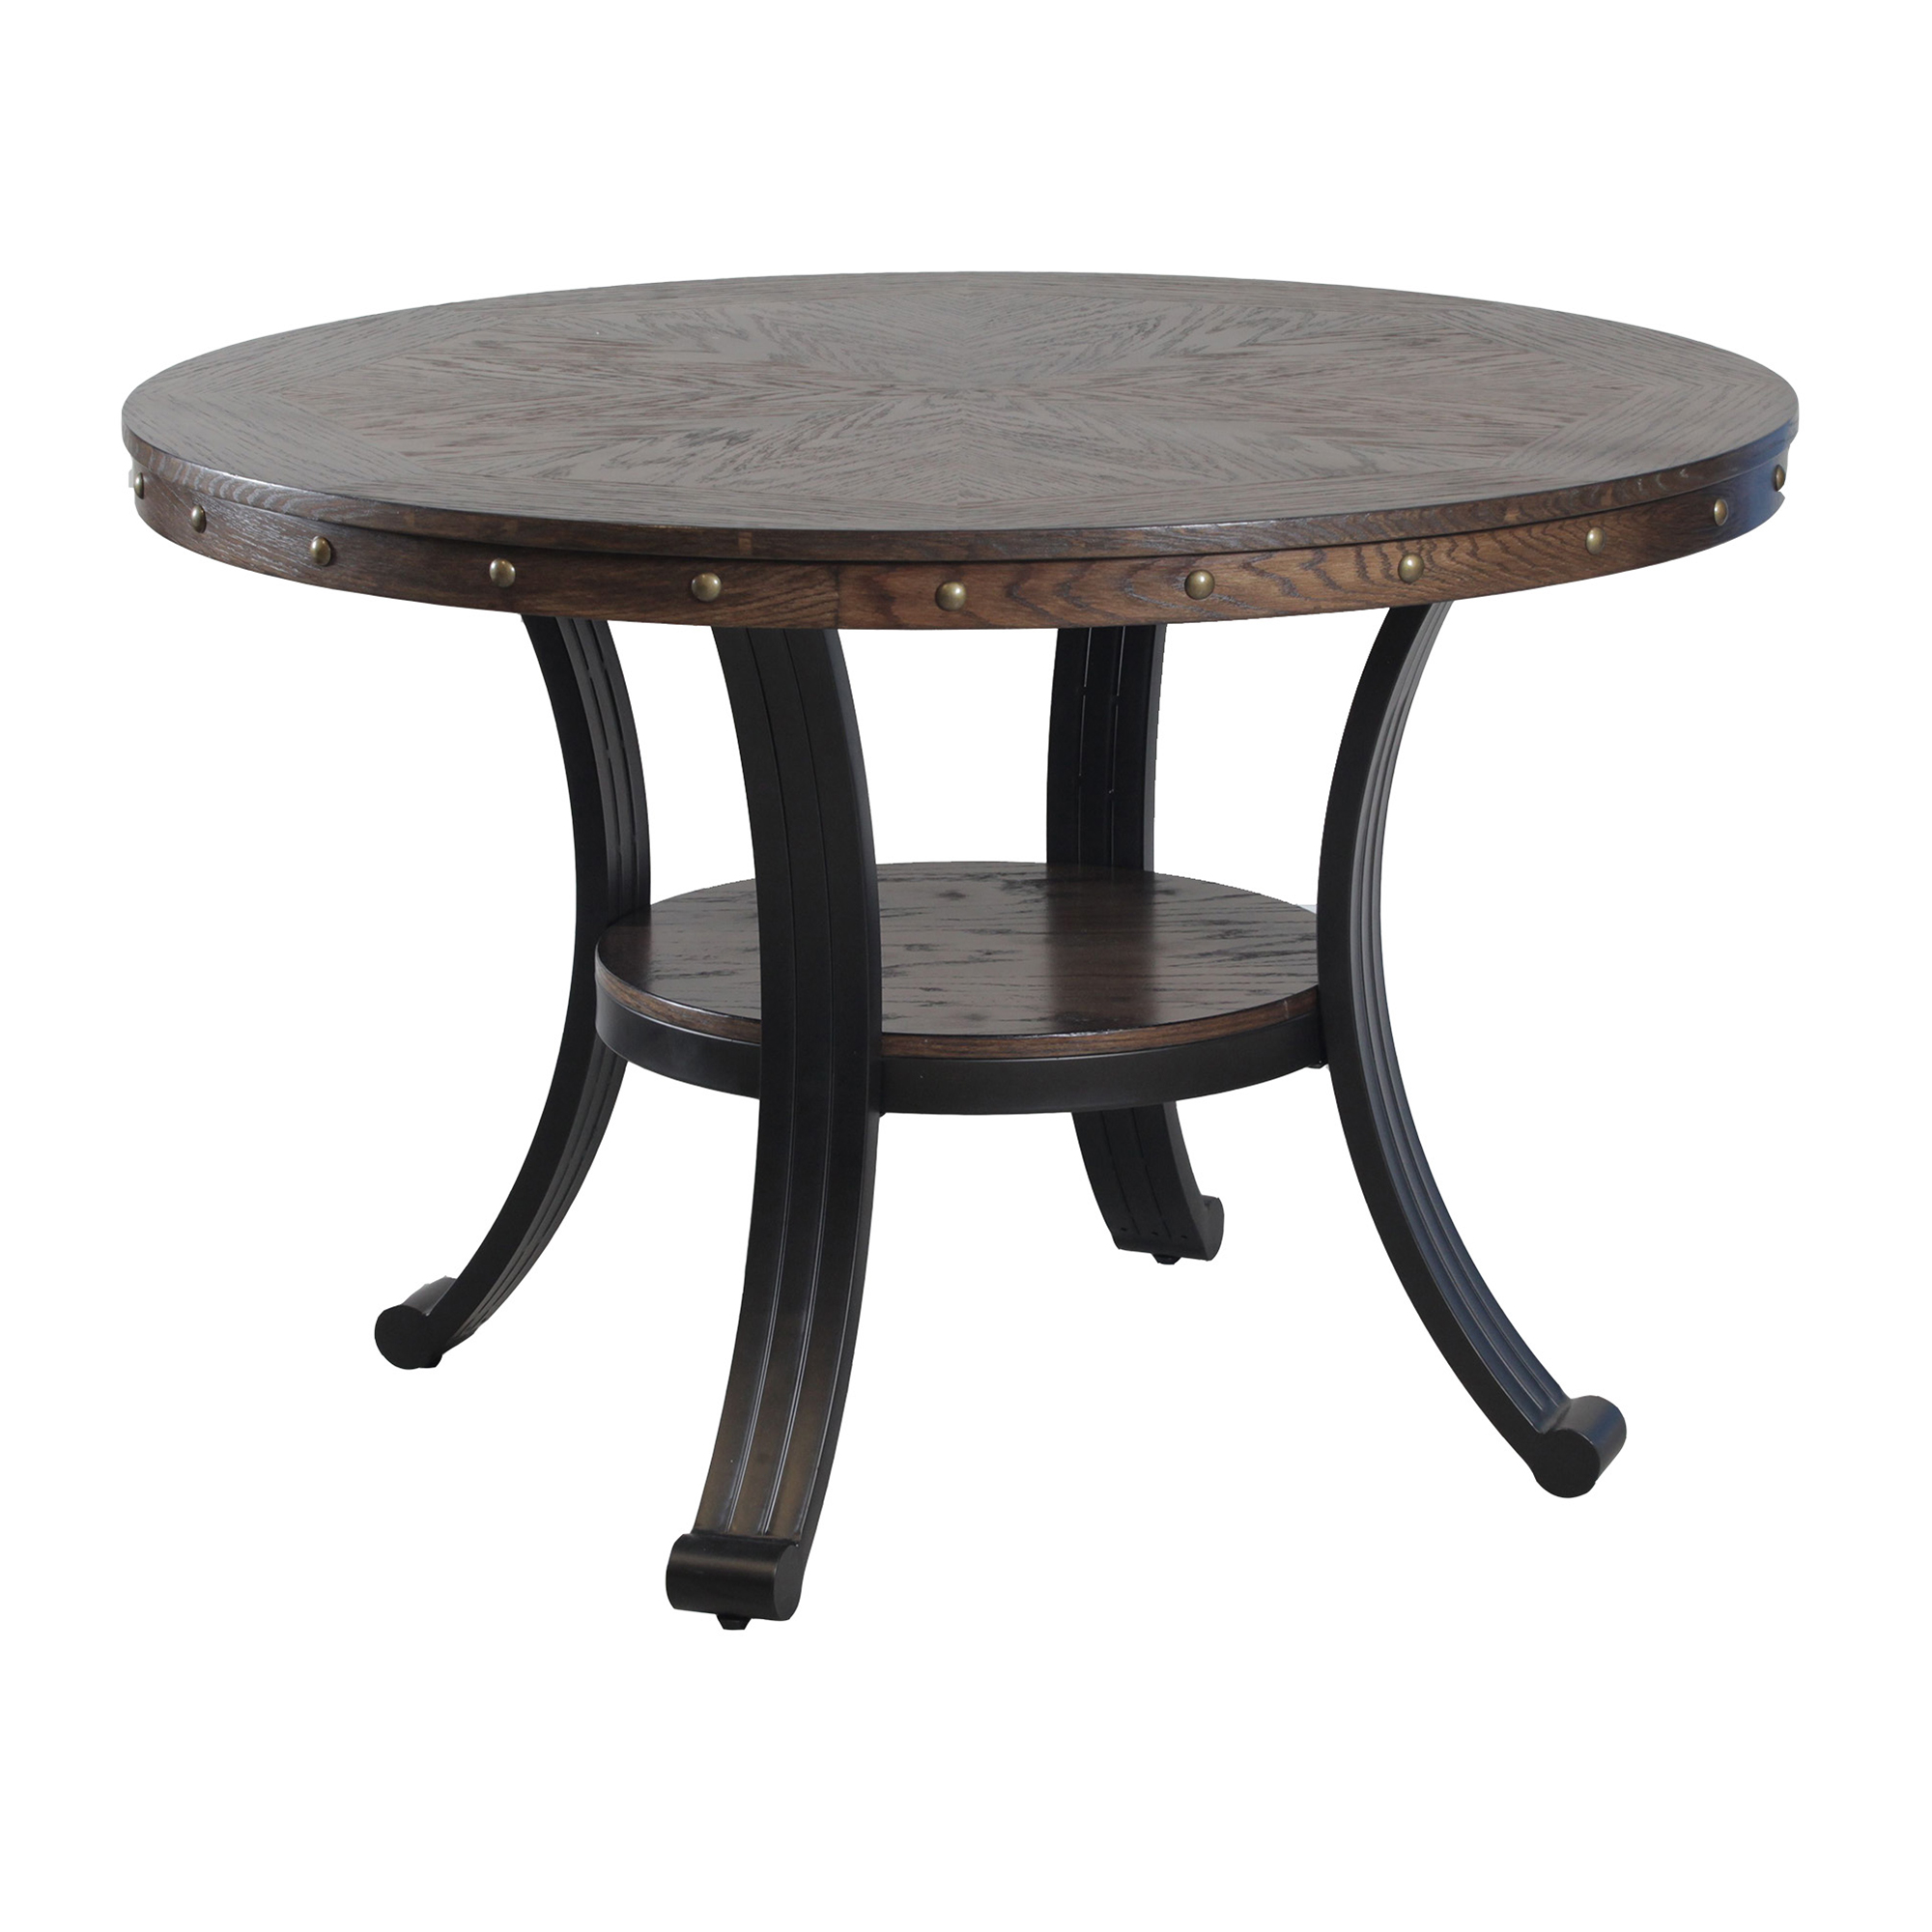 powell franklin dining table oak grain veneer res accent with nailheads apron elemental outdoor covers zinc coffee wicker furniture clearance entrance ideas pier one credit card